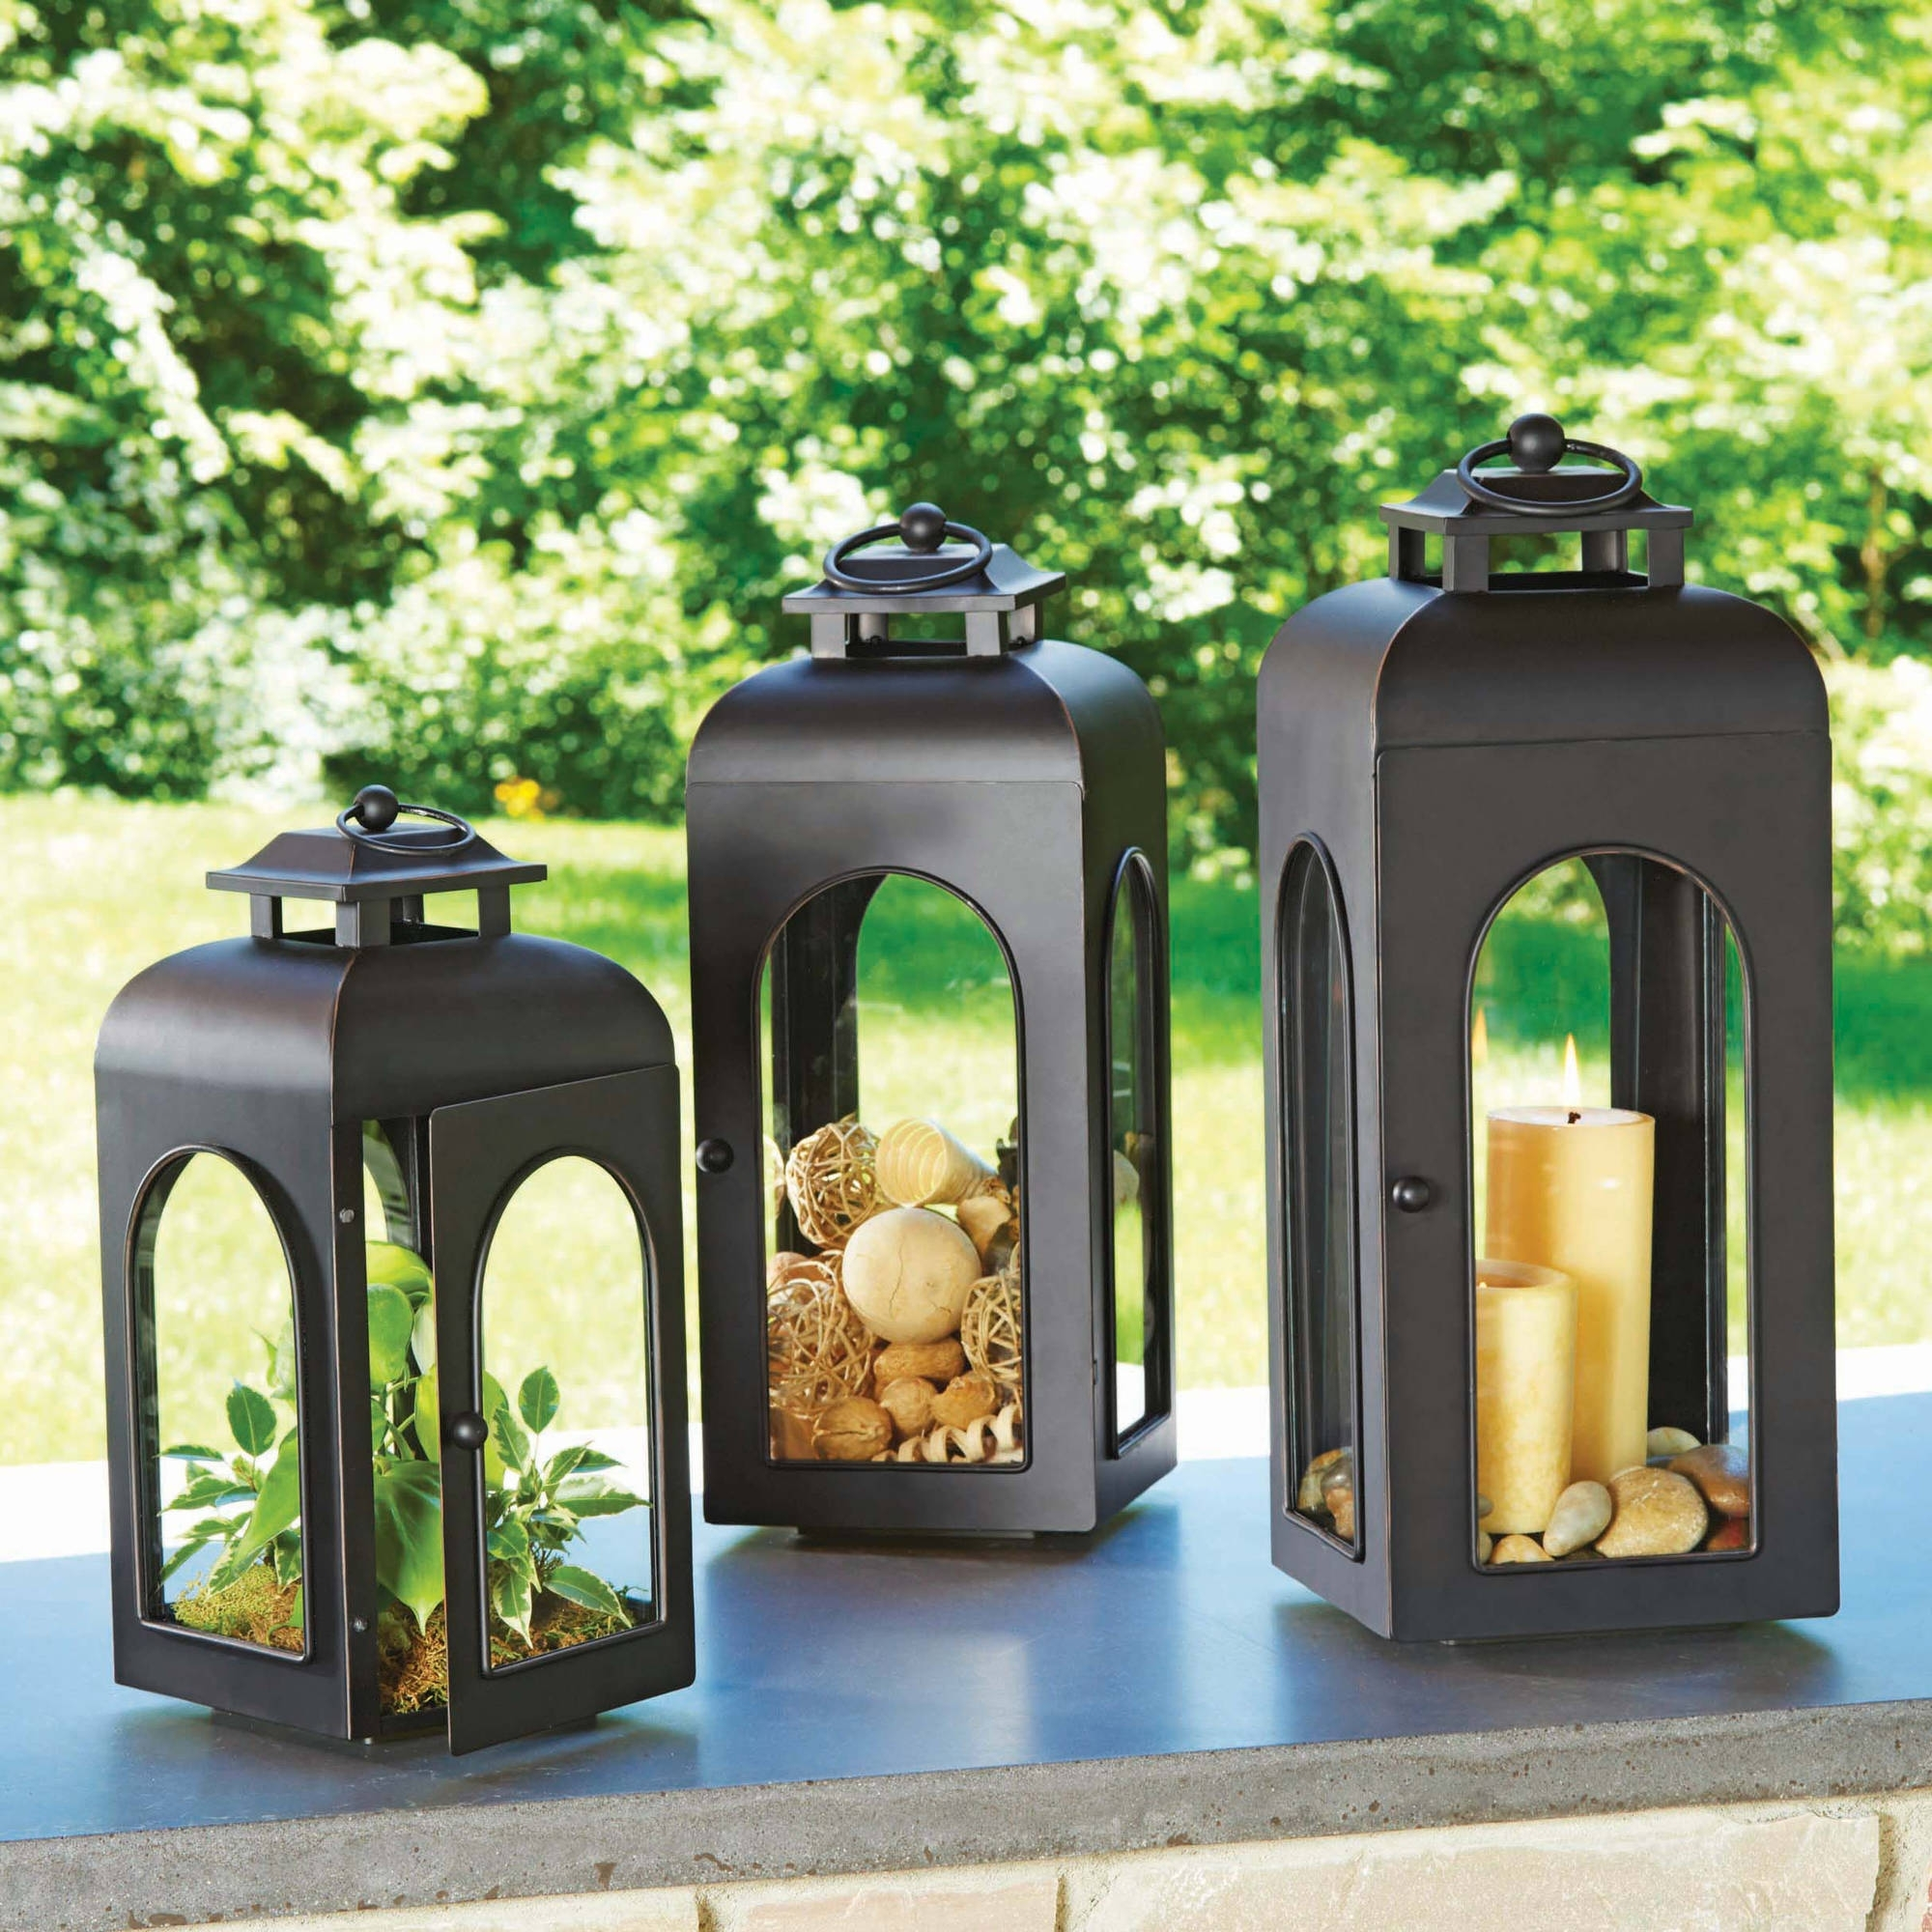 Better Homes And Gardens Domed Metal Outdoor Lantern – Walmart Inside Most Up To Date Outdoor Lanterns (View 19 of 20)